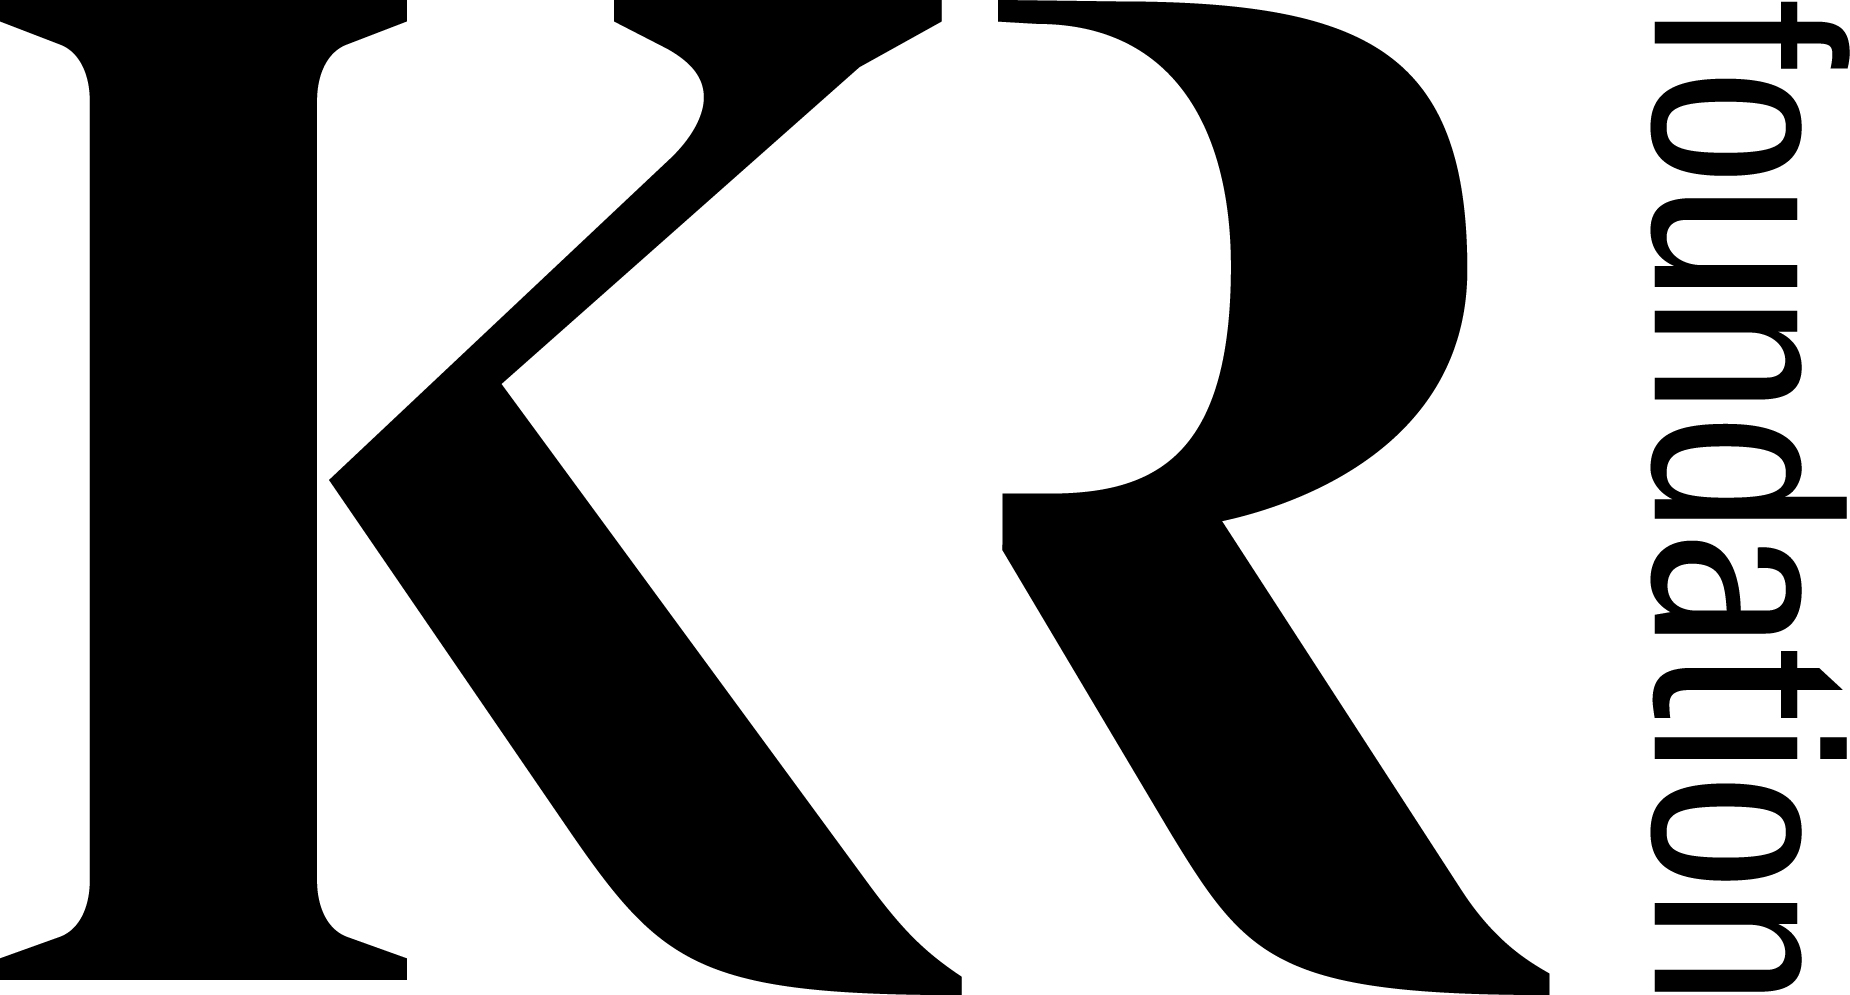 kr-foundation-logo-black